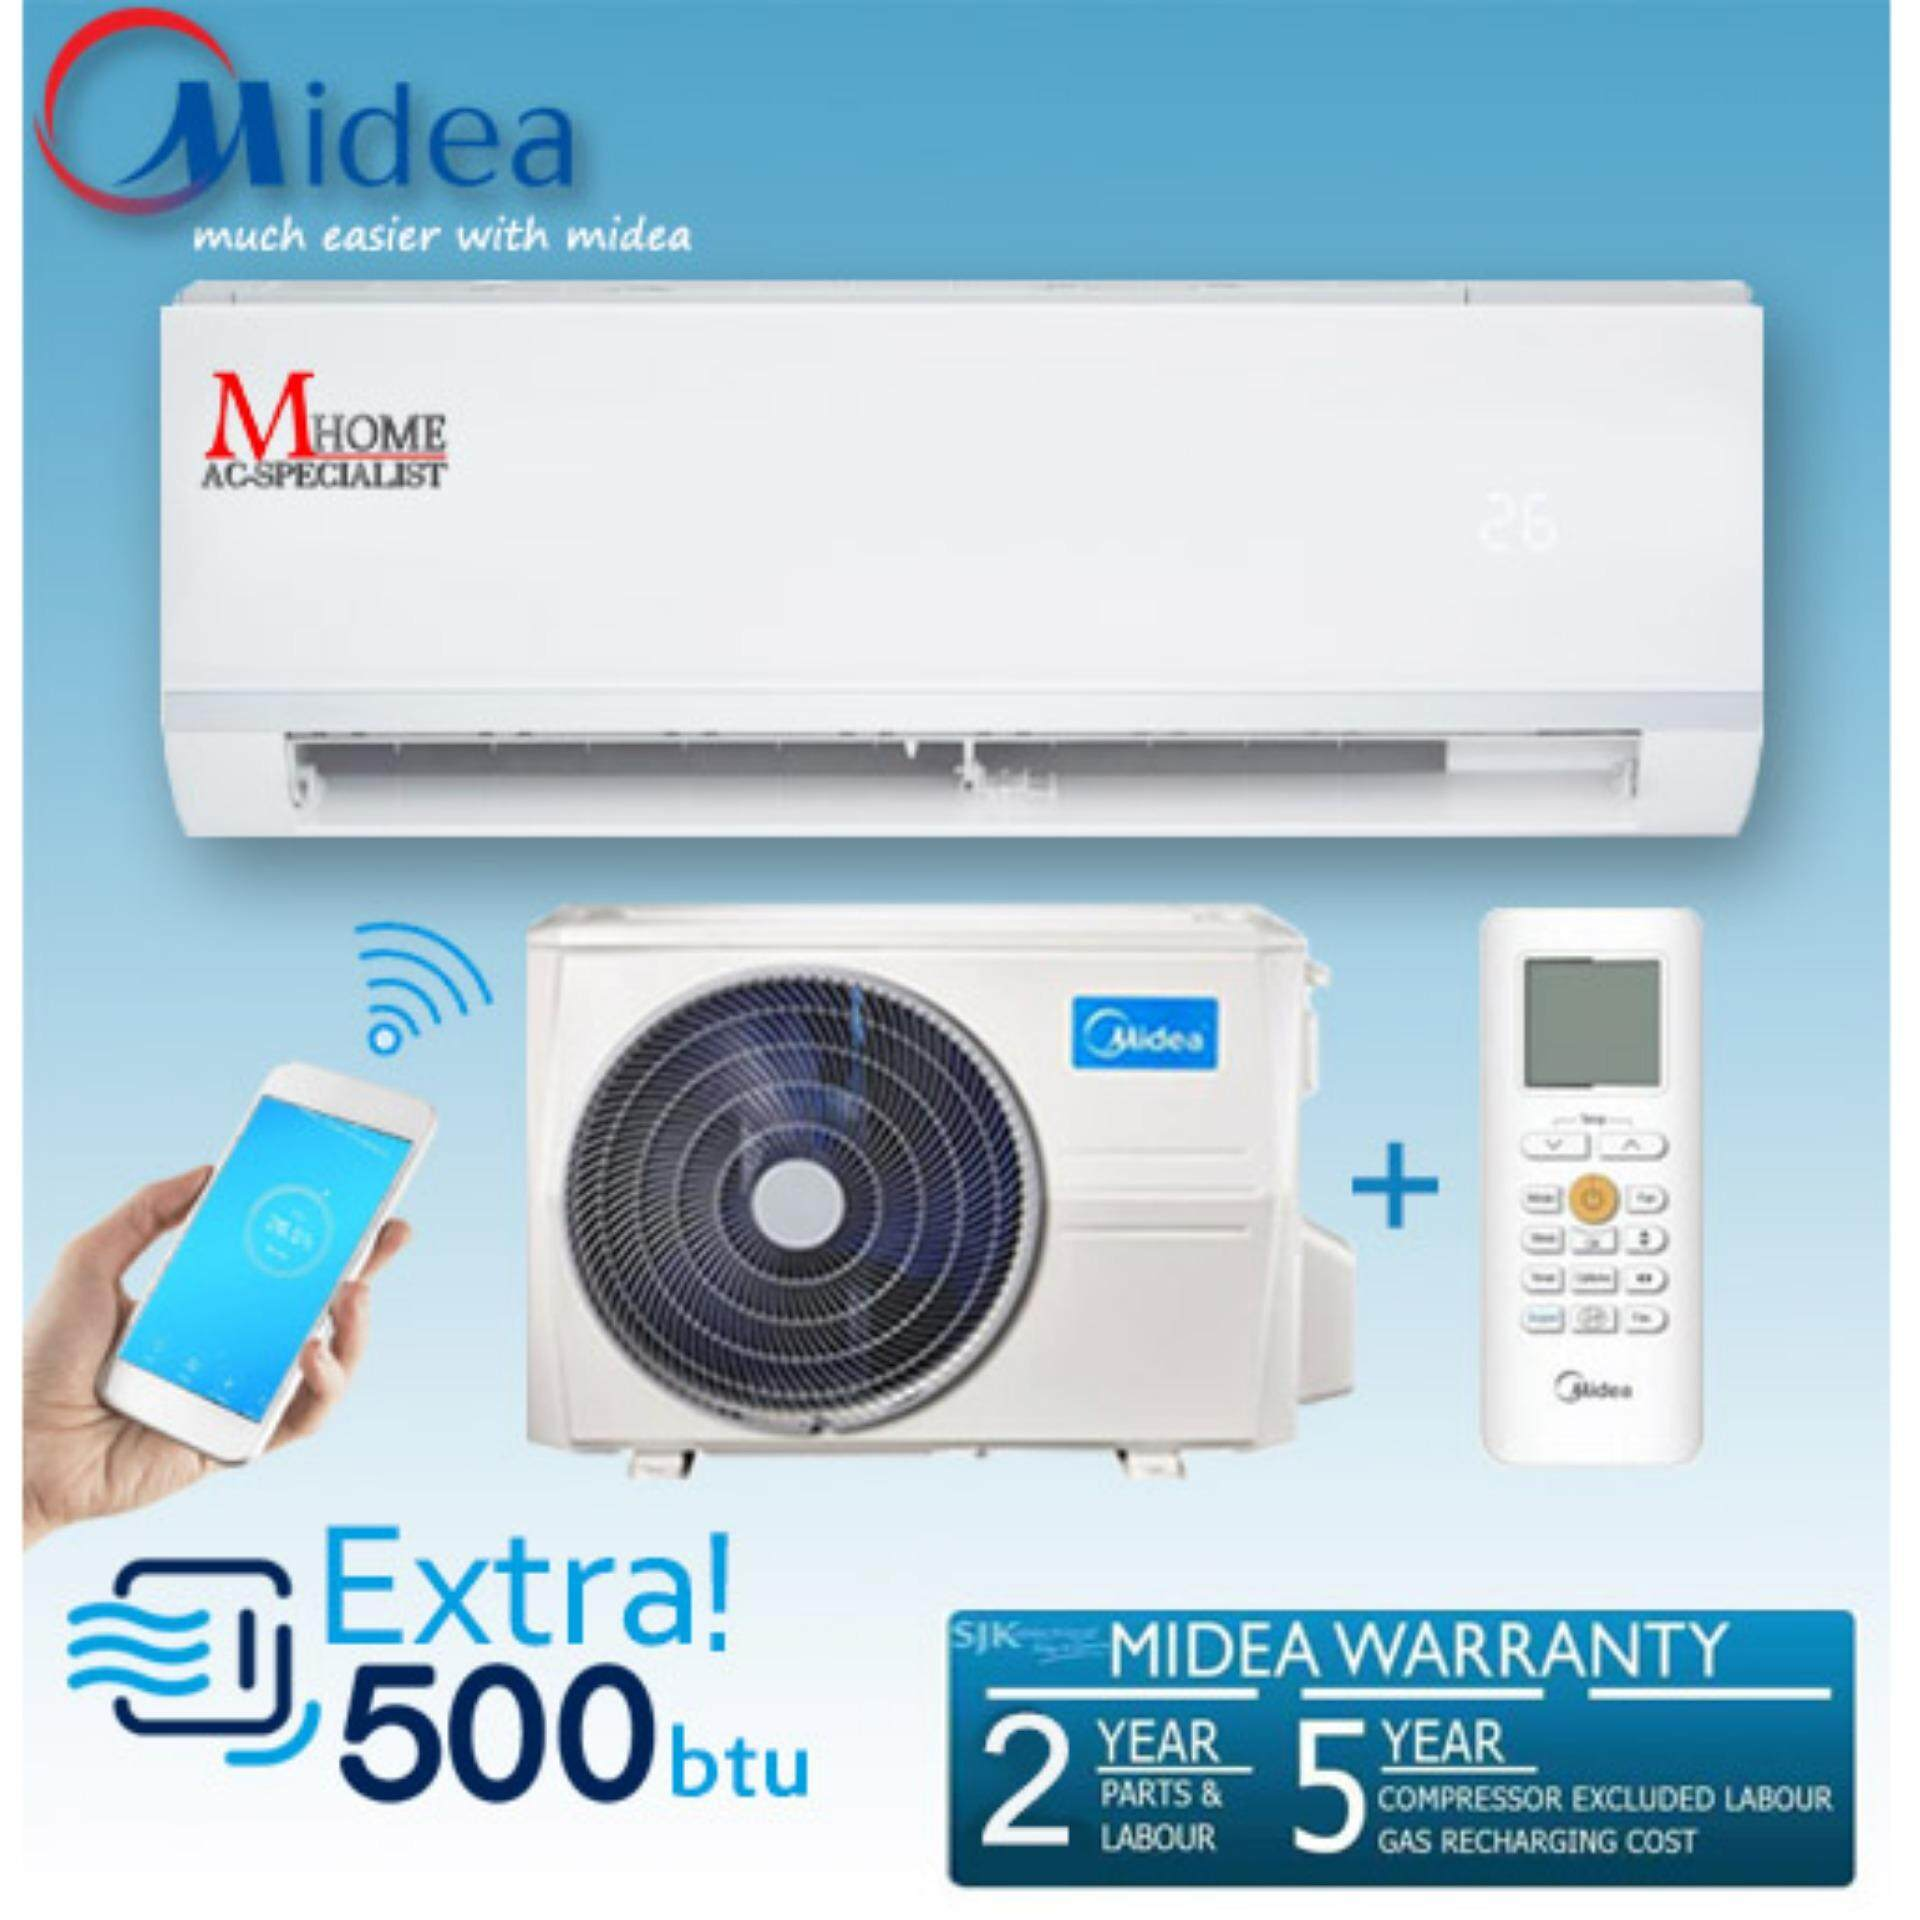 New Midea Msae 10crn1 10hp With Ionizer Air Conditioner 3 Star Electronical Circuit Board Buy